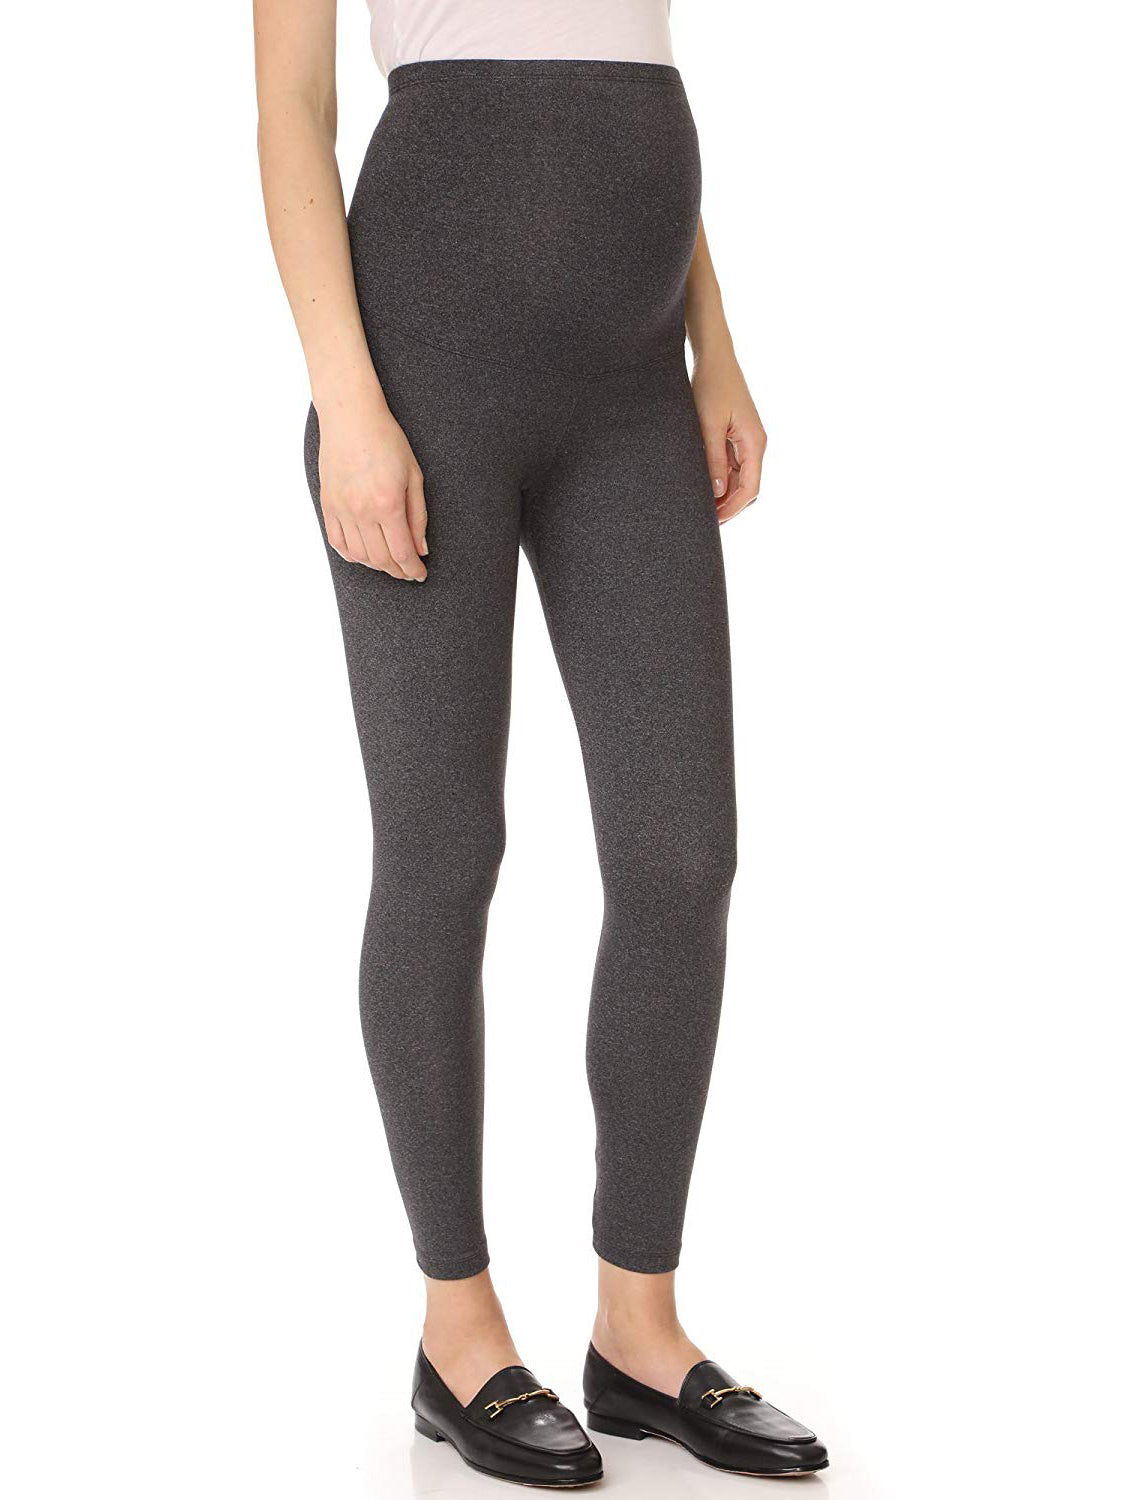 a4d52115ffc02 David Lerner Women's Maternity Leggings - Charcoal Grey | TILDEN